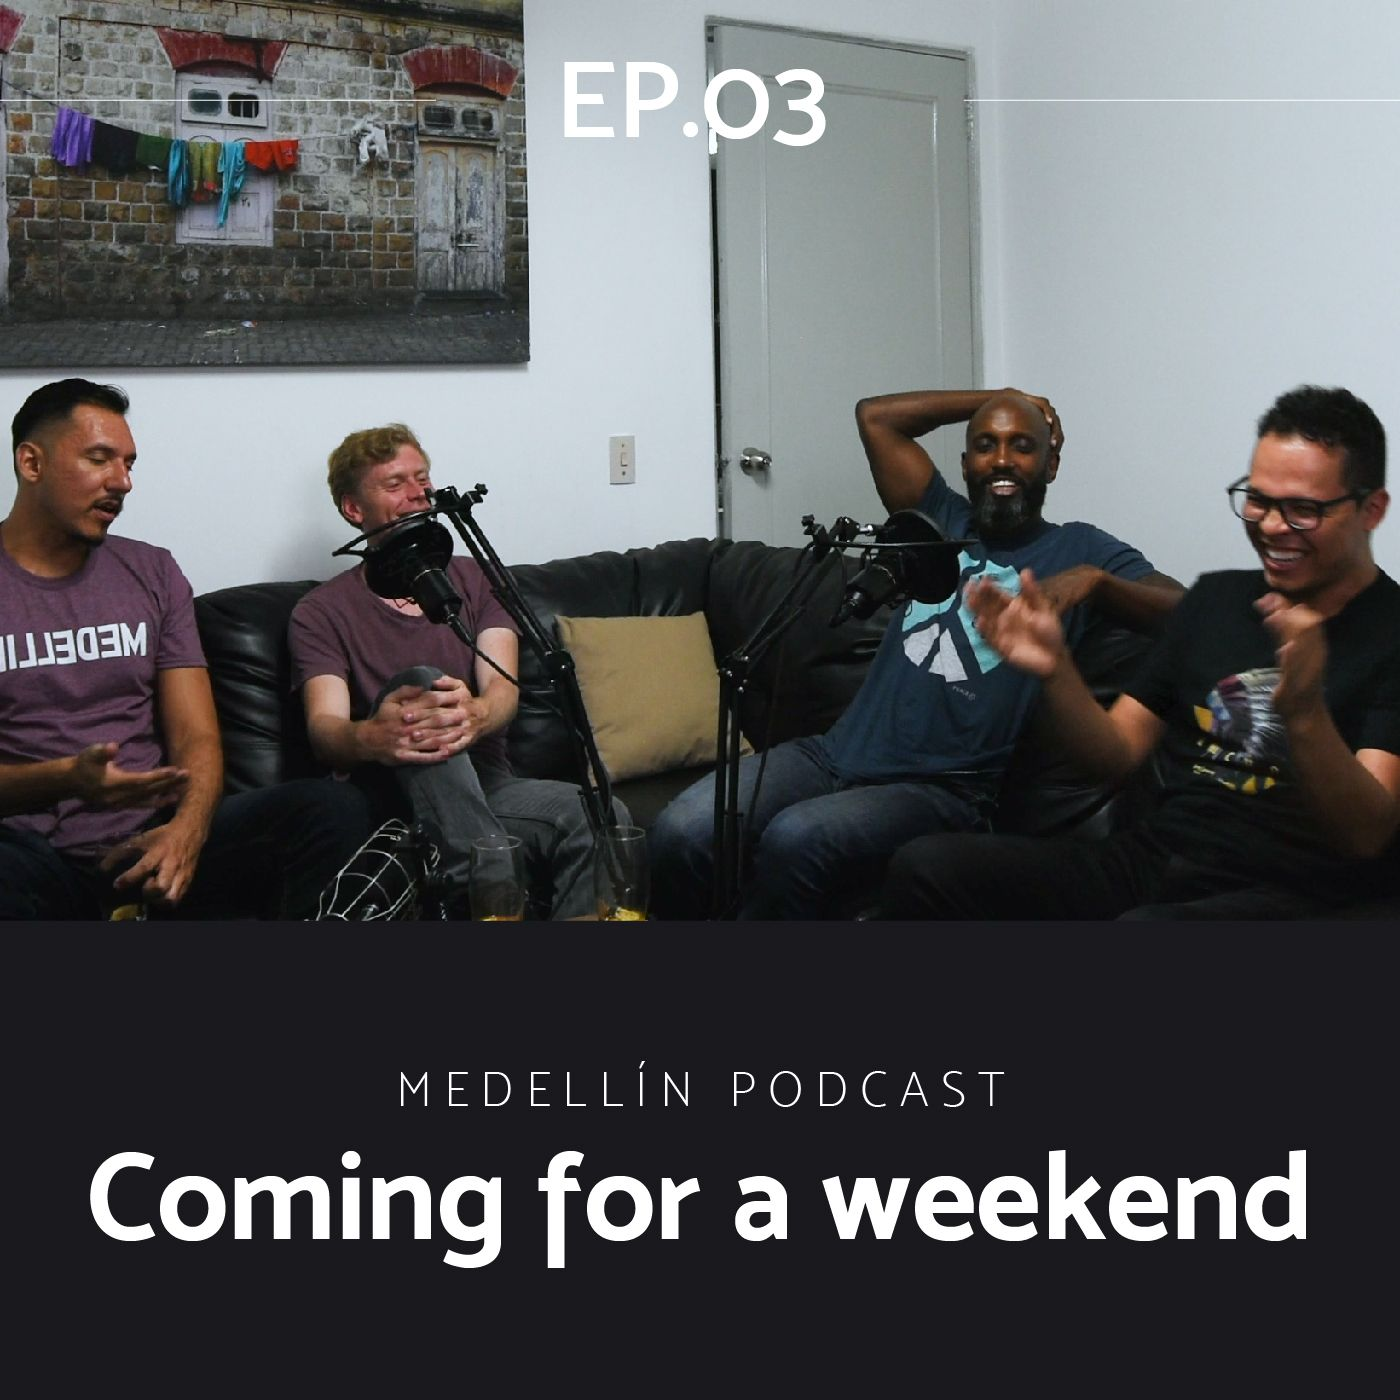 A Weekend in Medellin - Medellin Podcast Ep. 03